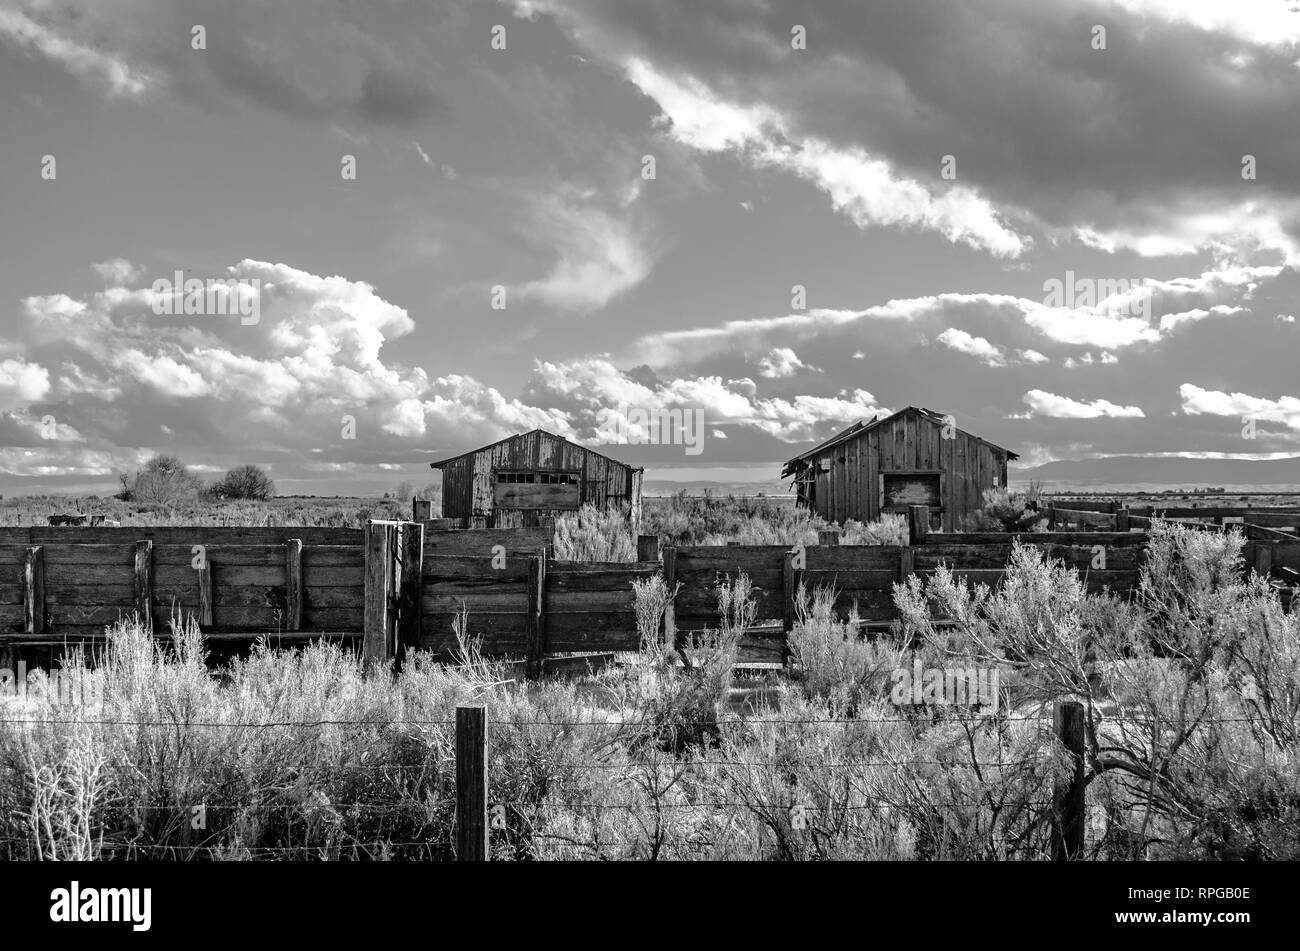 Old bunkhouses and corrals at a cow camp in the Central Valley of Caifornia USA - Stock Image